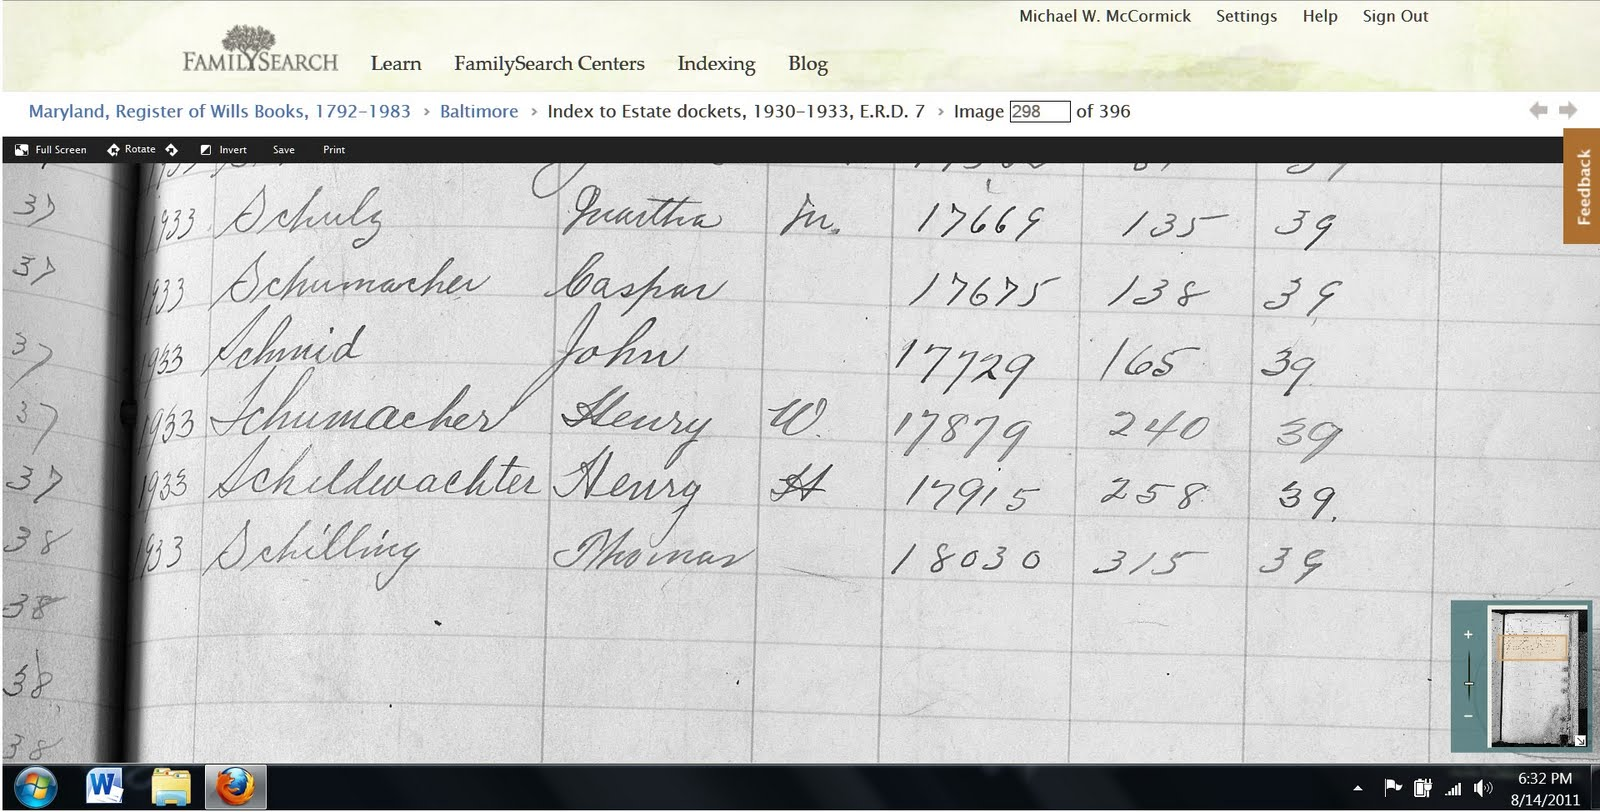 Baltimore county maryland genealogy learn familysearch org - With That Index Data I Was Able To Go Back To The List Of Probate Books That Had Been Scanned And Pick The One I Want I Was Supposed To Be Looking